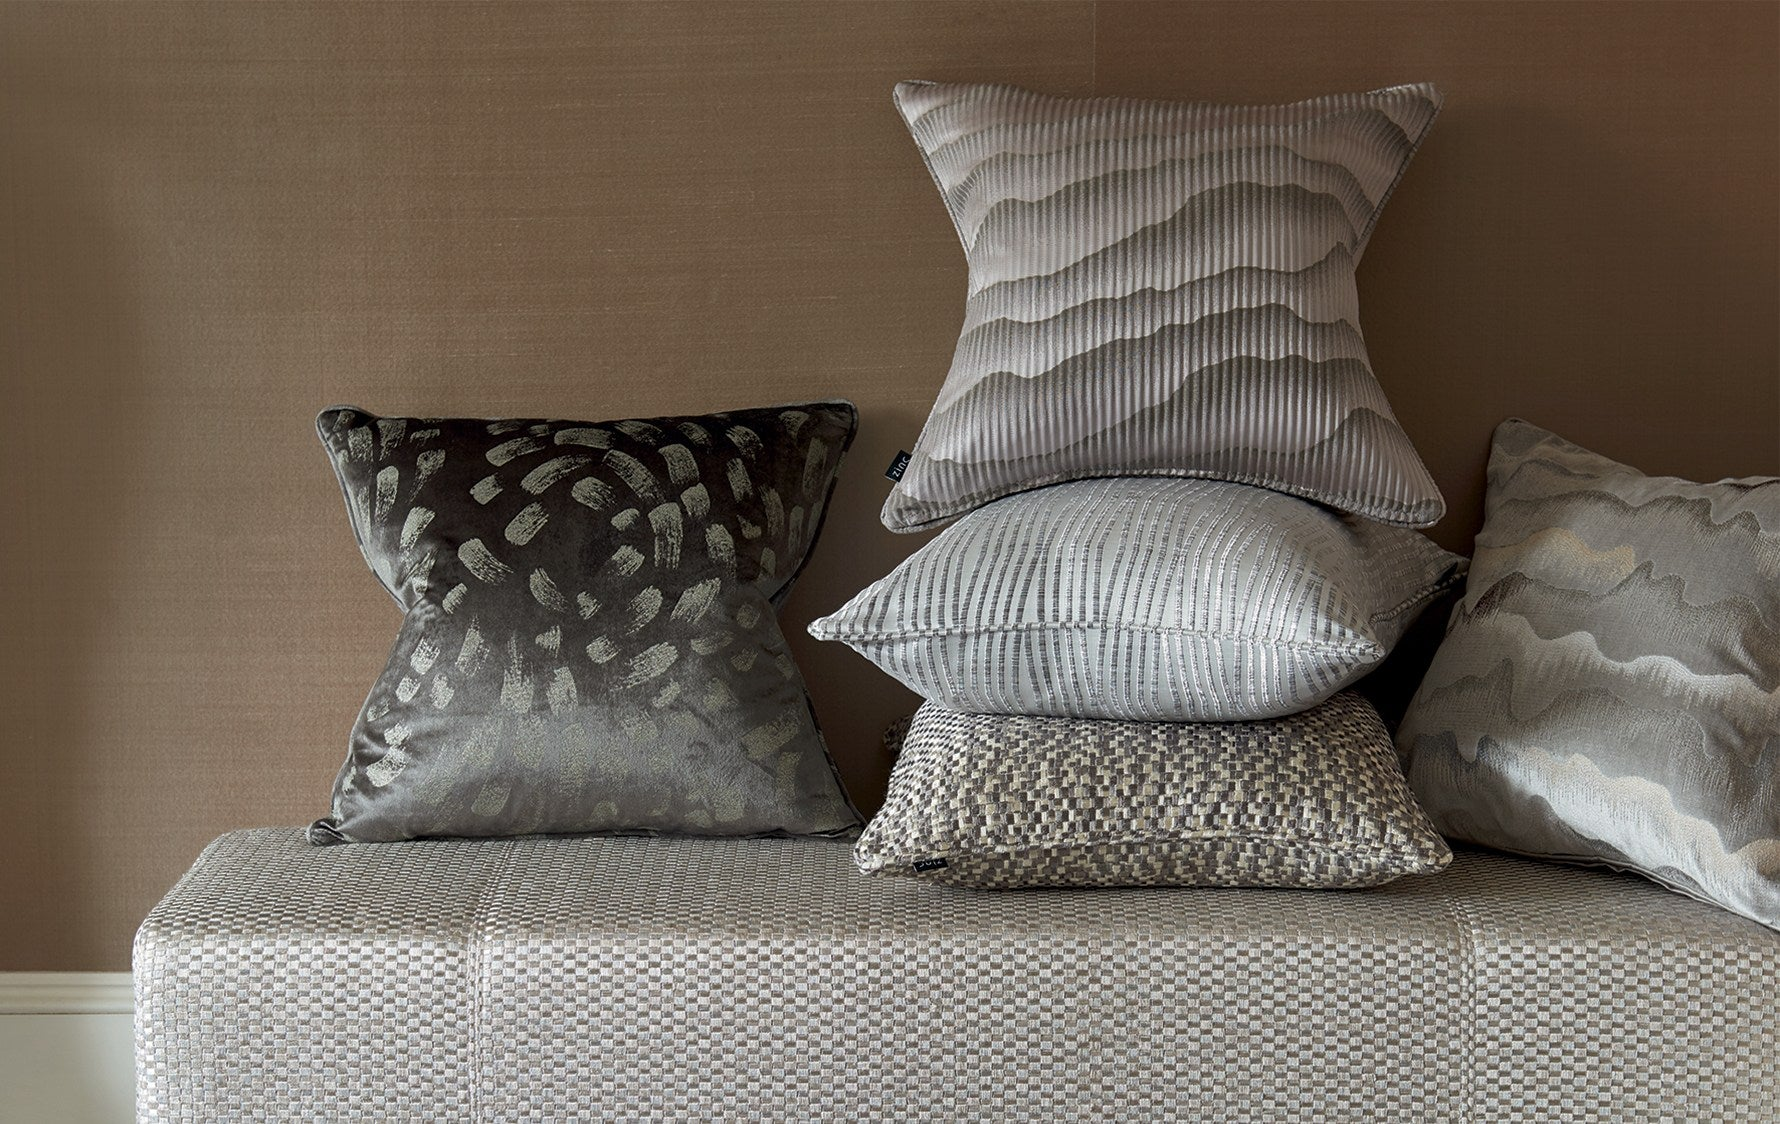 Luxury Winter Cushions | How to Decorate your Home for Winter | Read more in the LuxDeco Style Guide